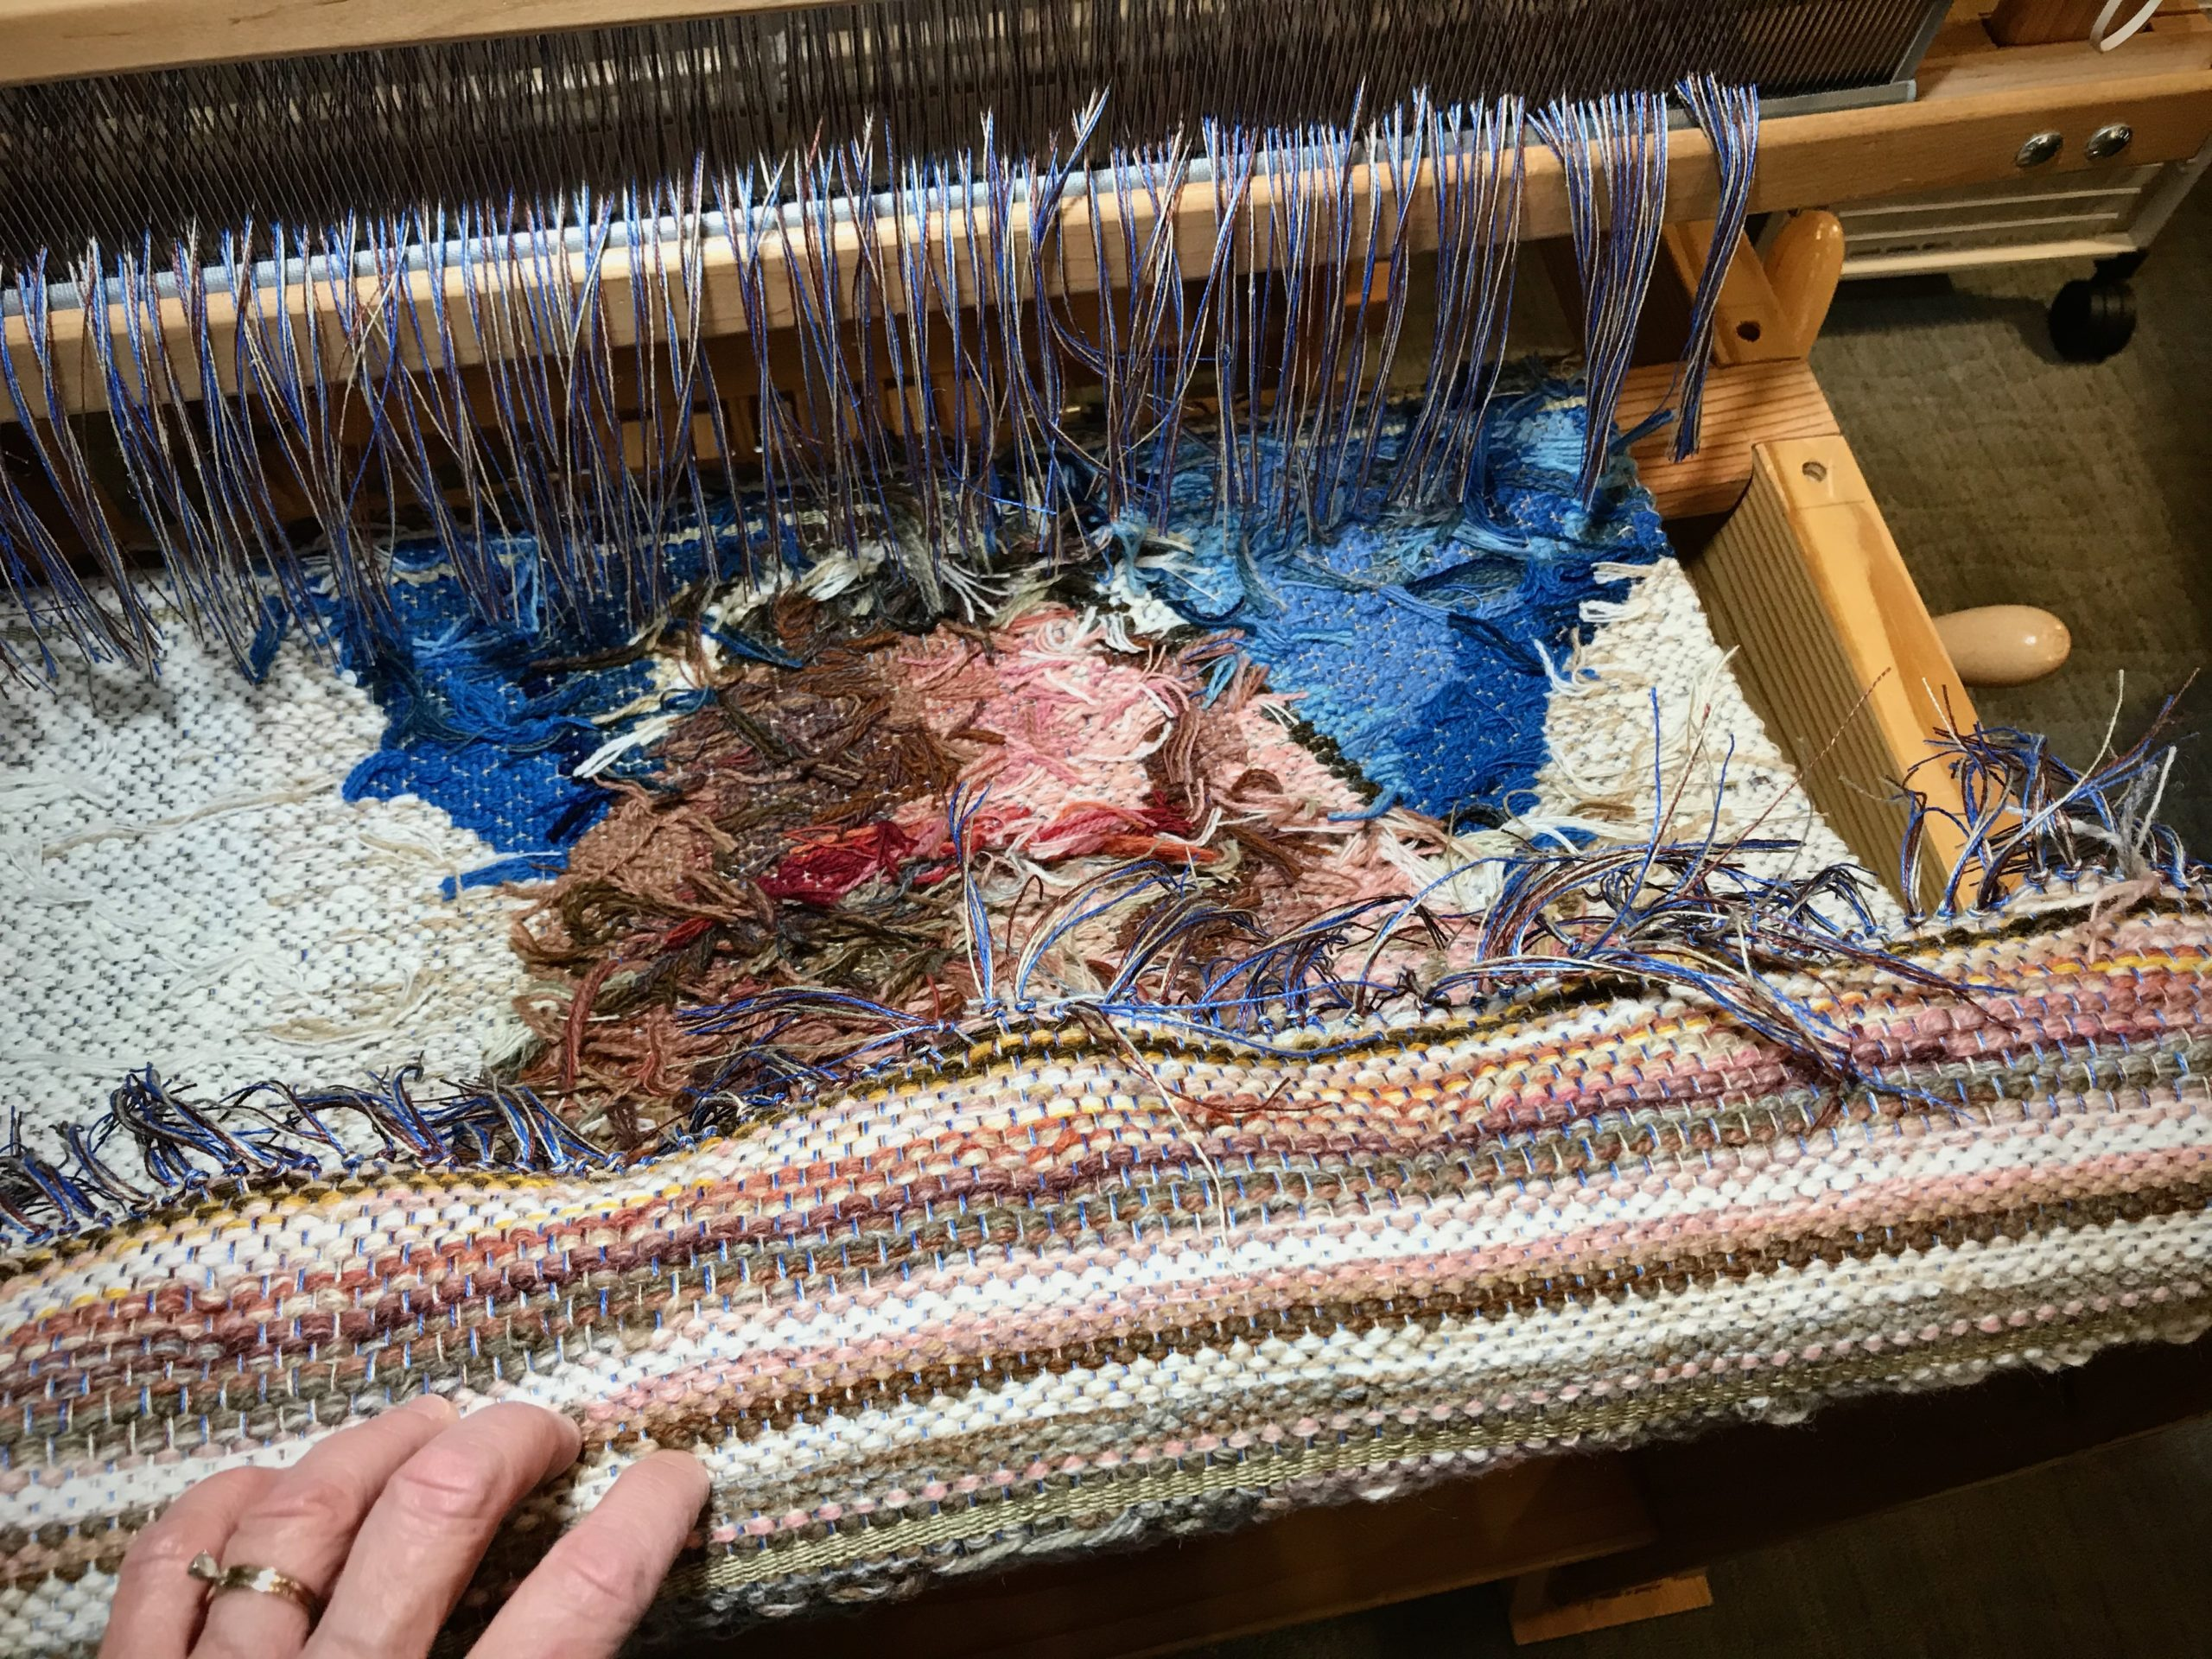 Cutting off a tapestry from the floor loom.